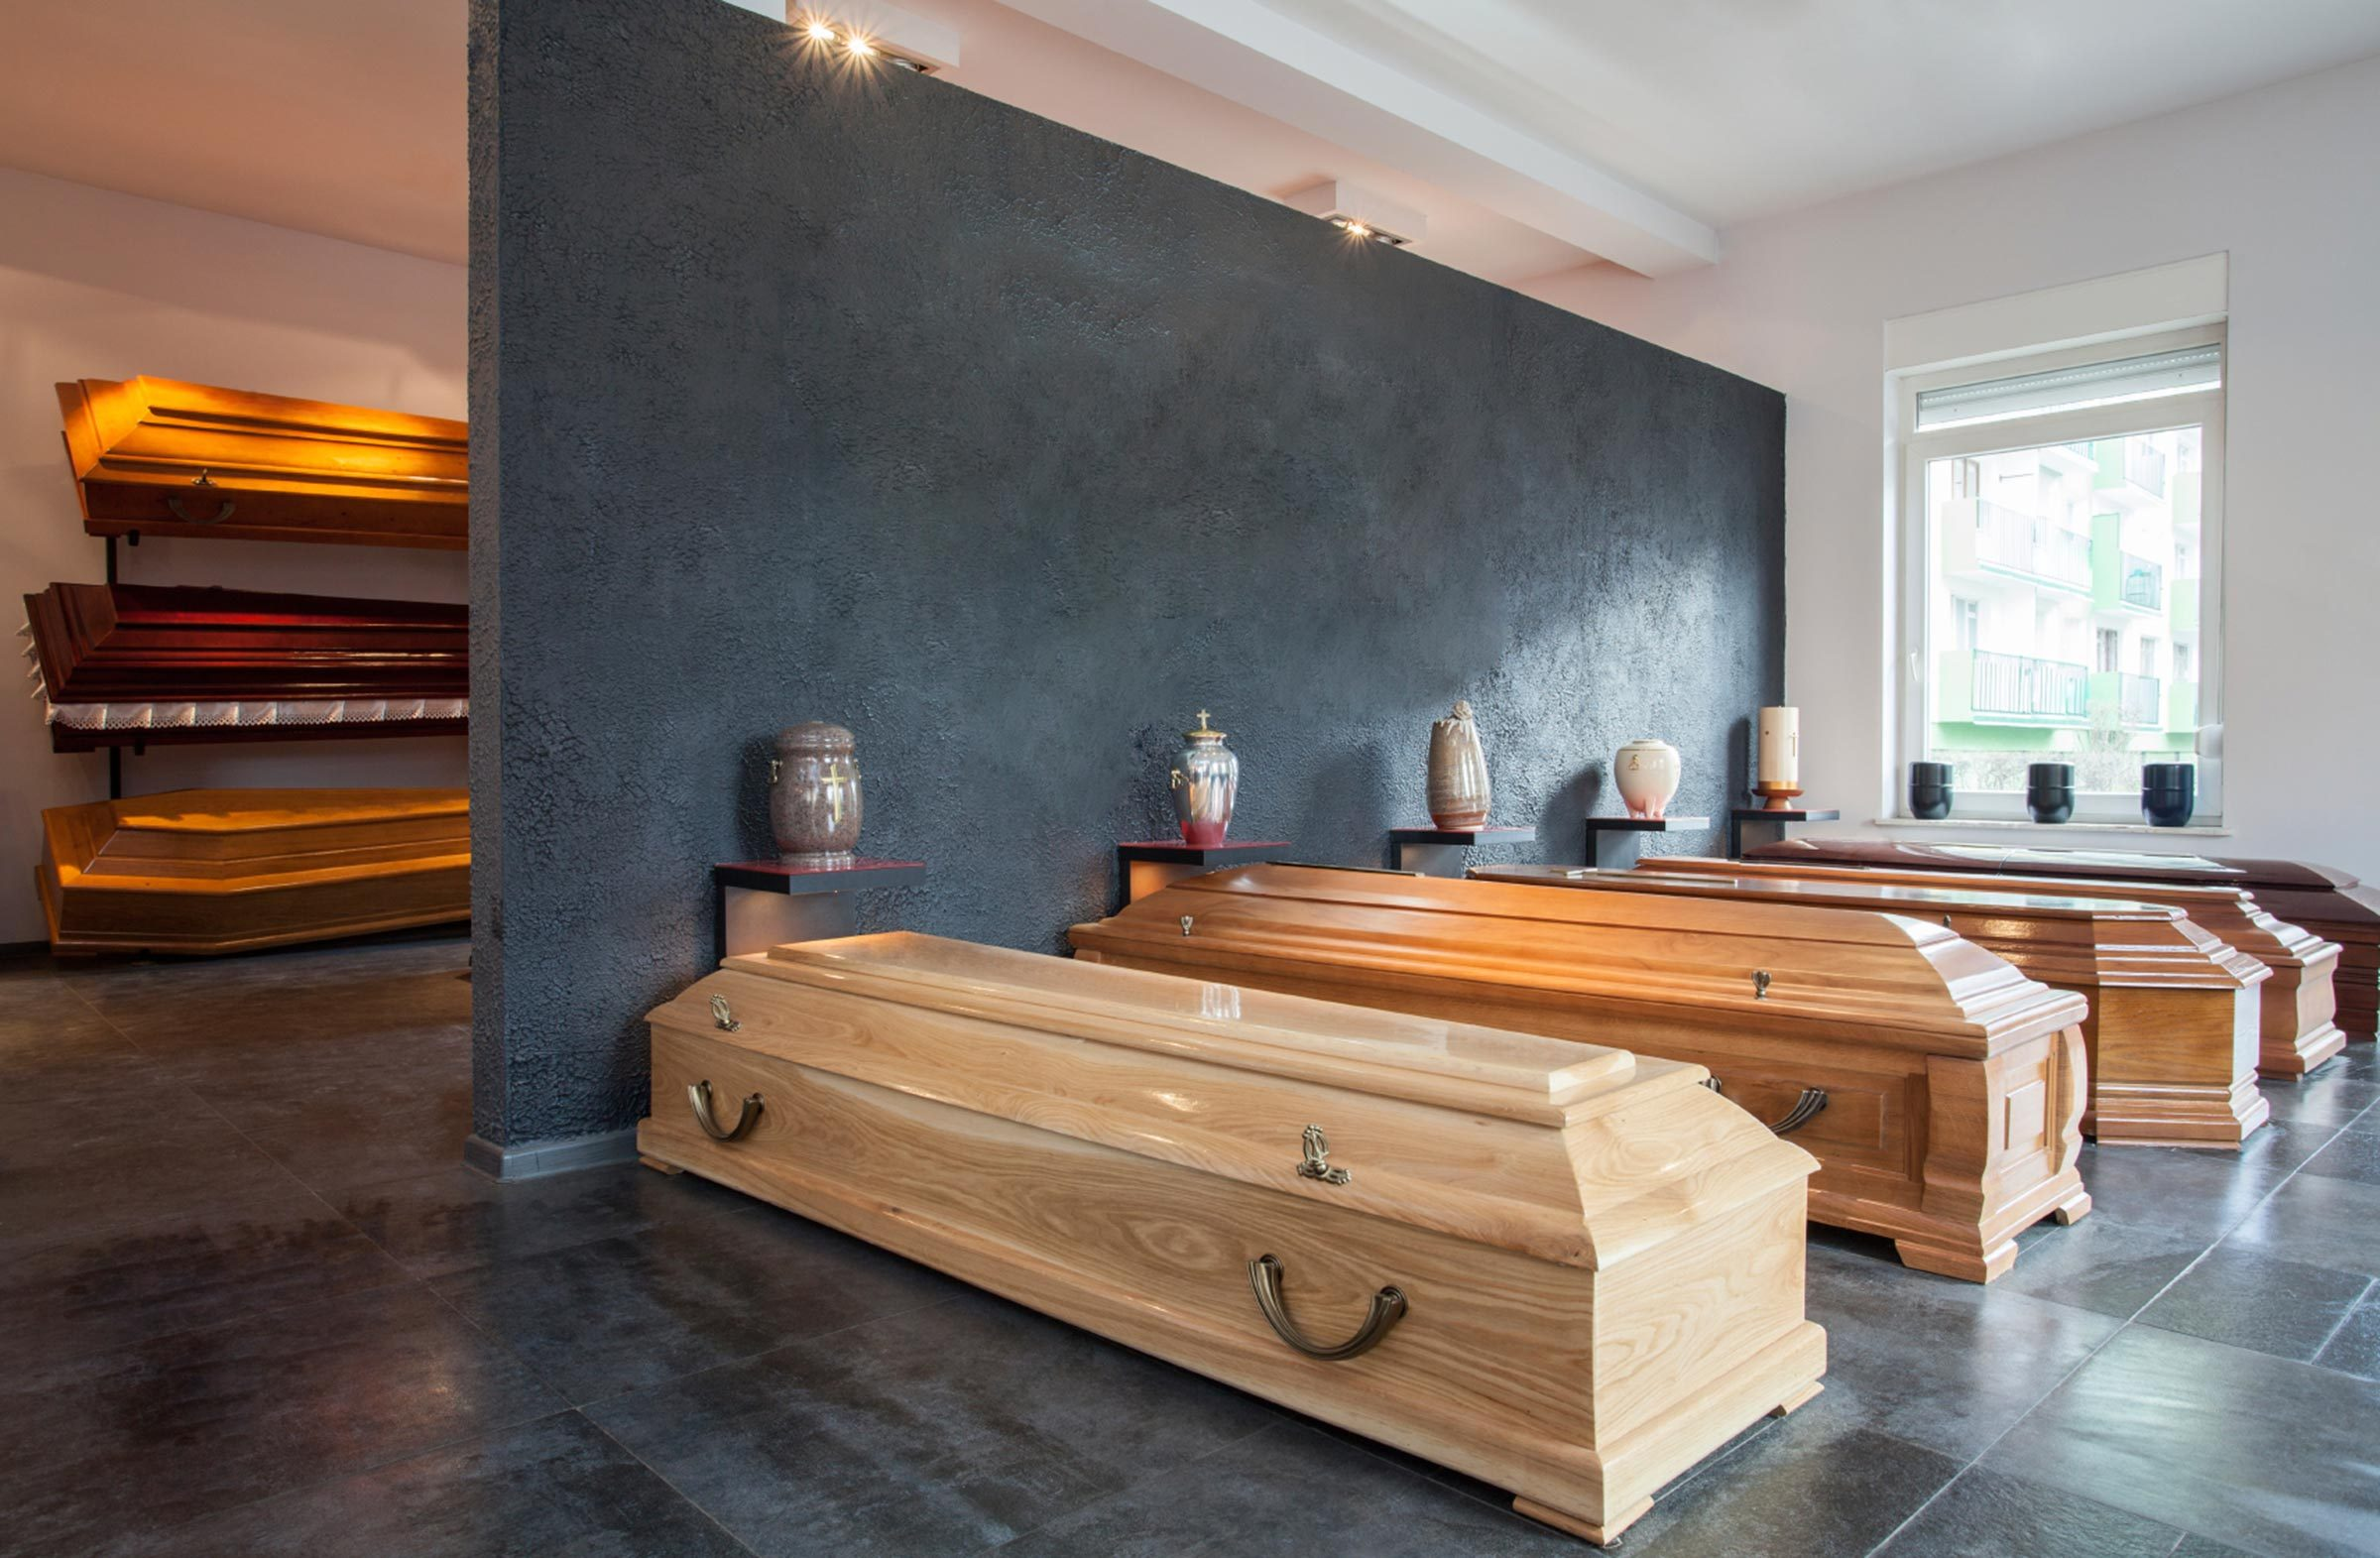 8. If there's no low-cost casket in the display room, ask to see one anyway.